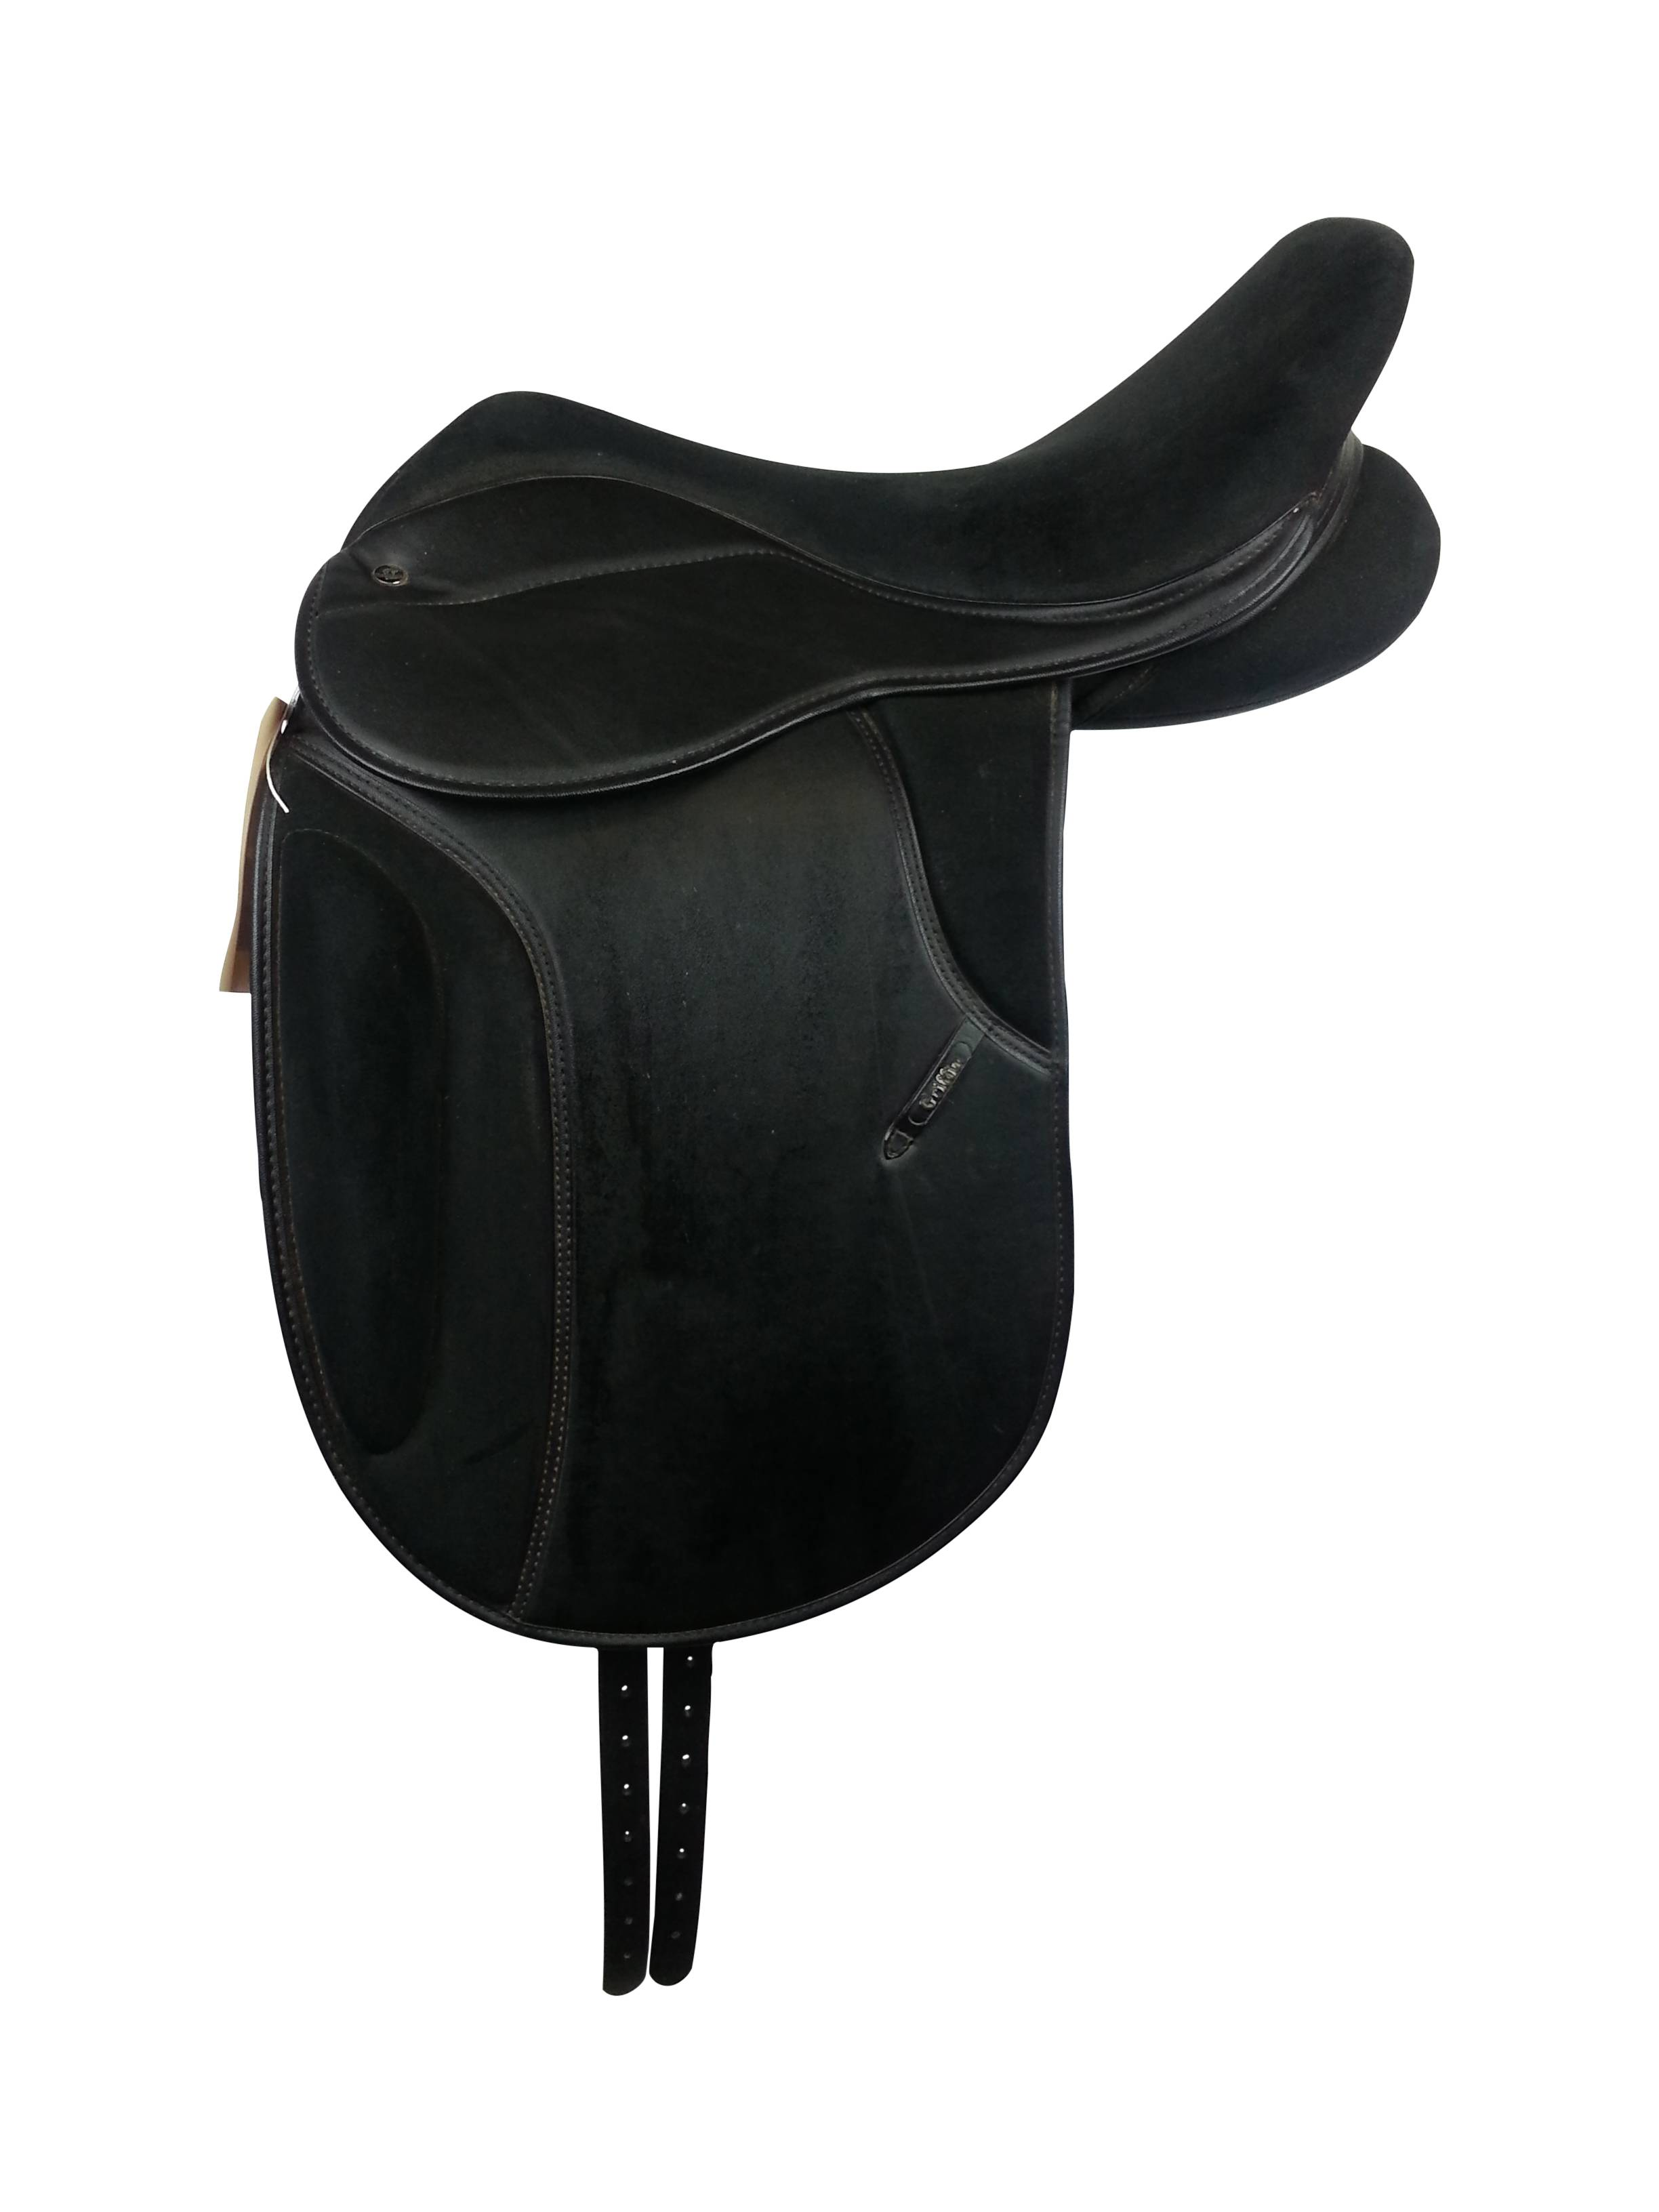 Used - Thorowgood Griffin Synthetic Dressage Saddle